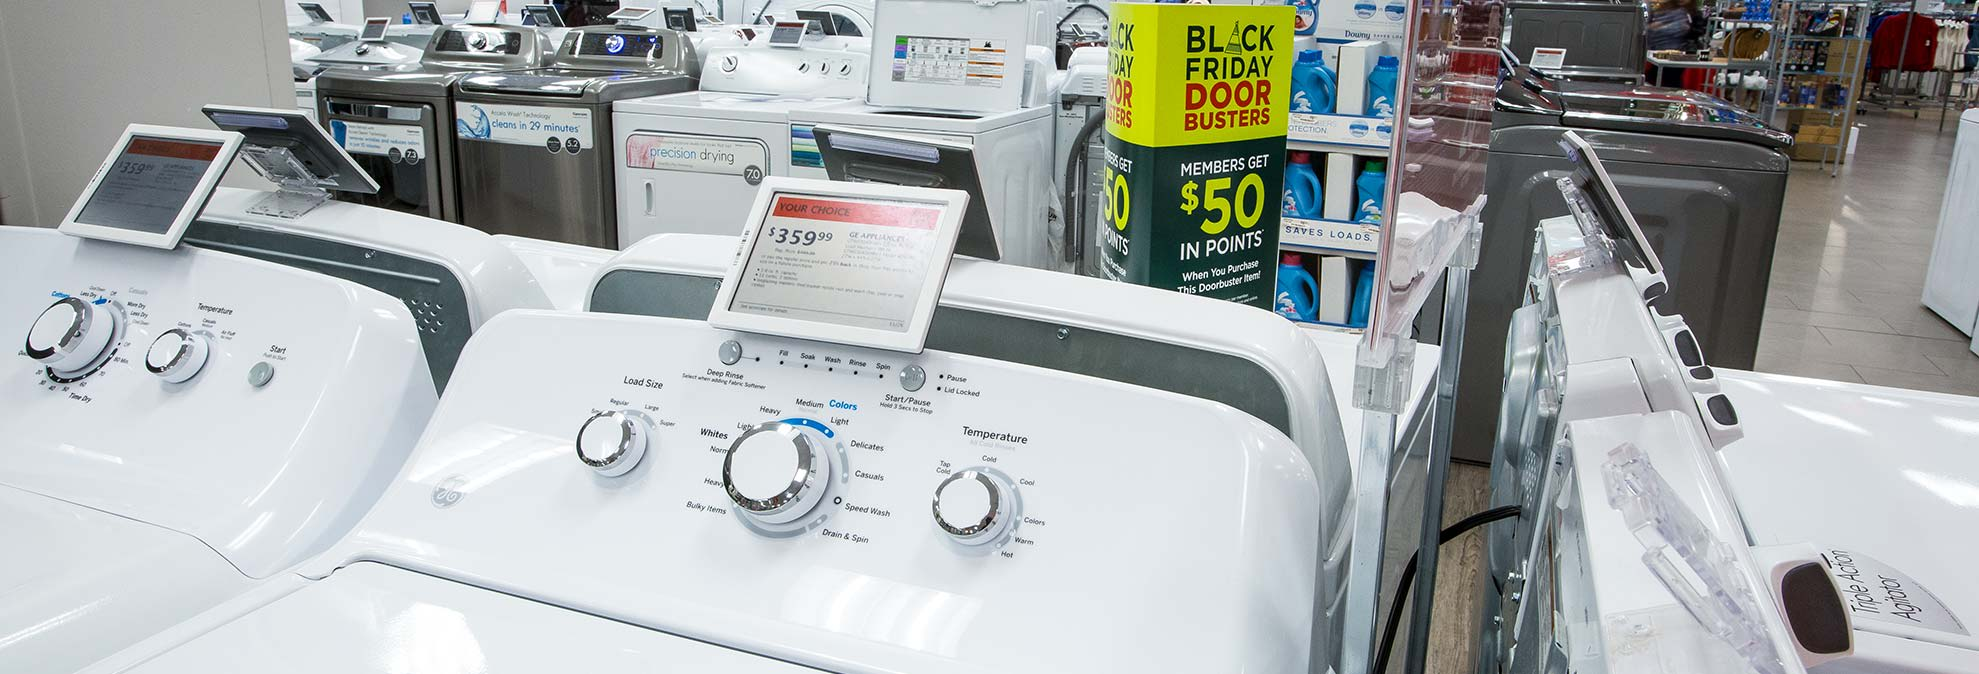 Black Friday Deals On Washers And Dryers Start Now